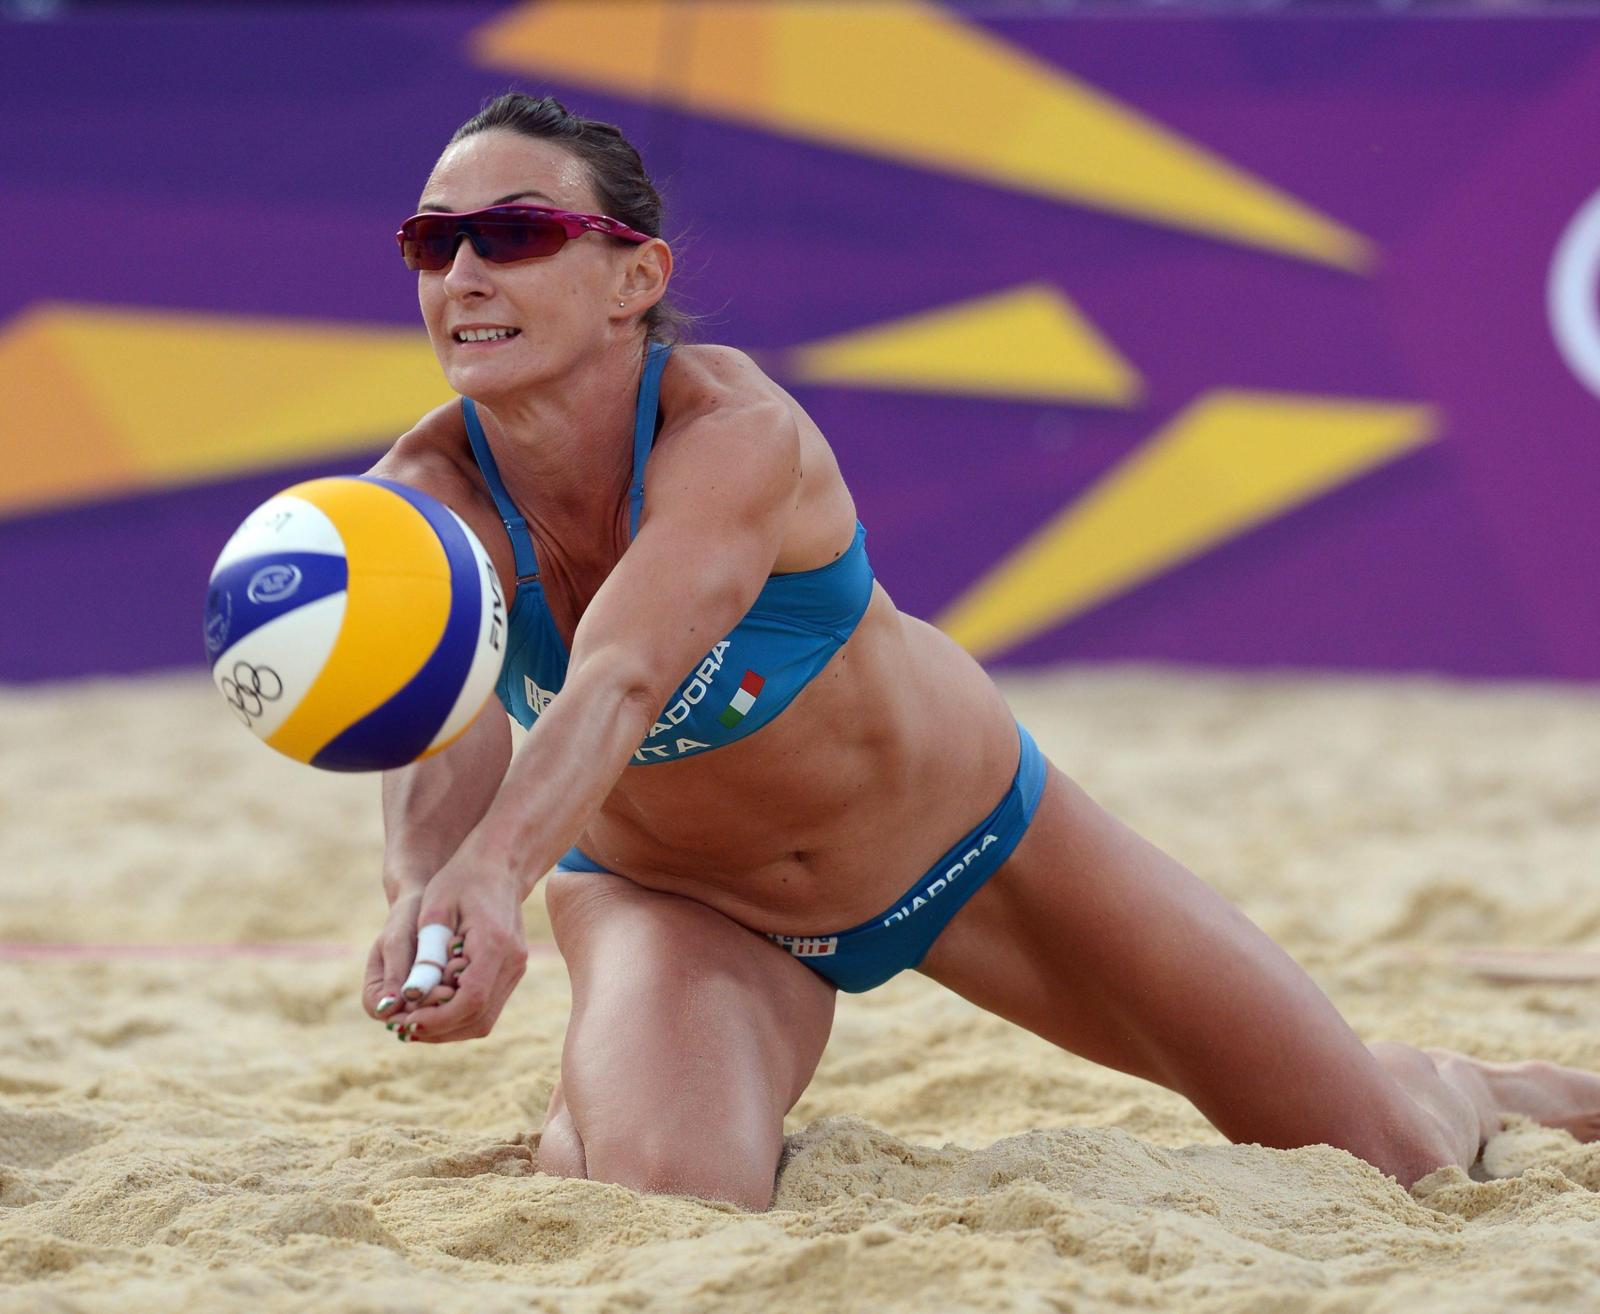 BEACH VOLLEY Greta Cicolari parla e accusa